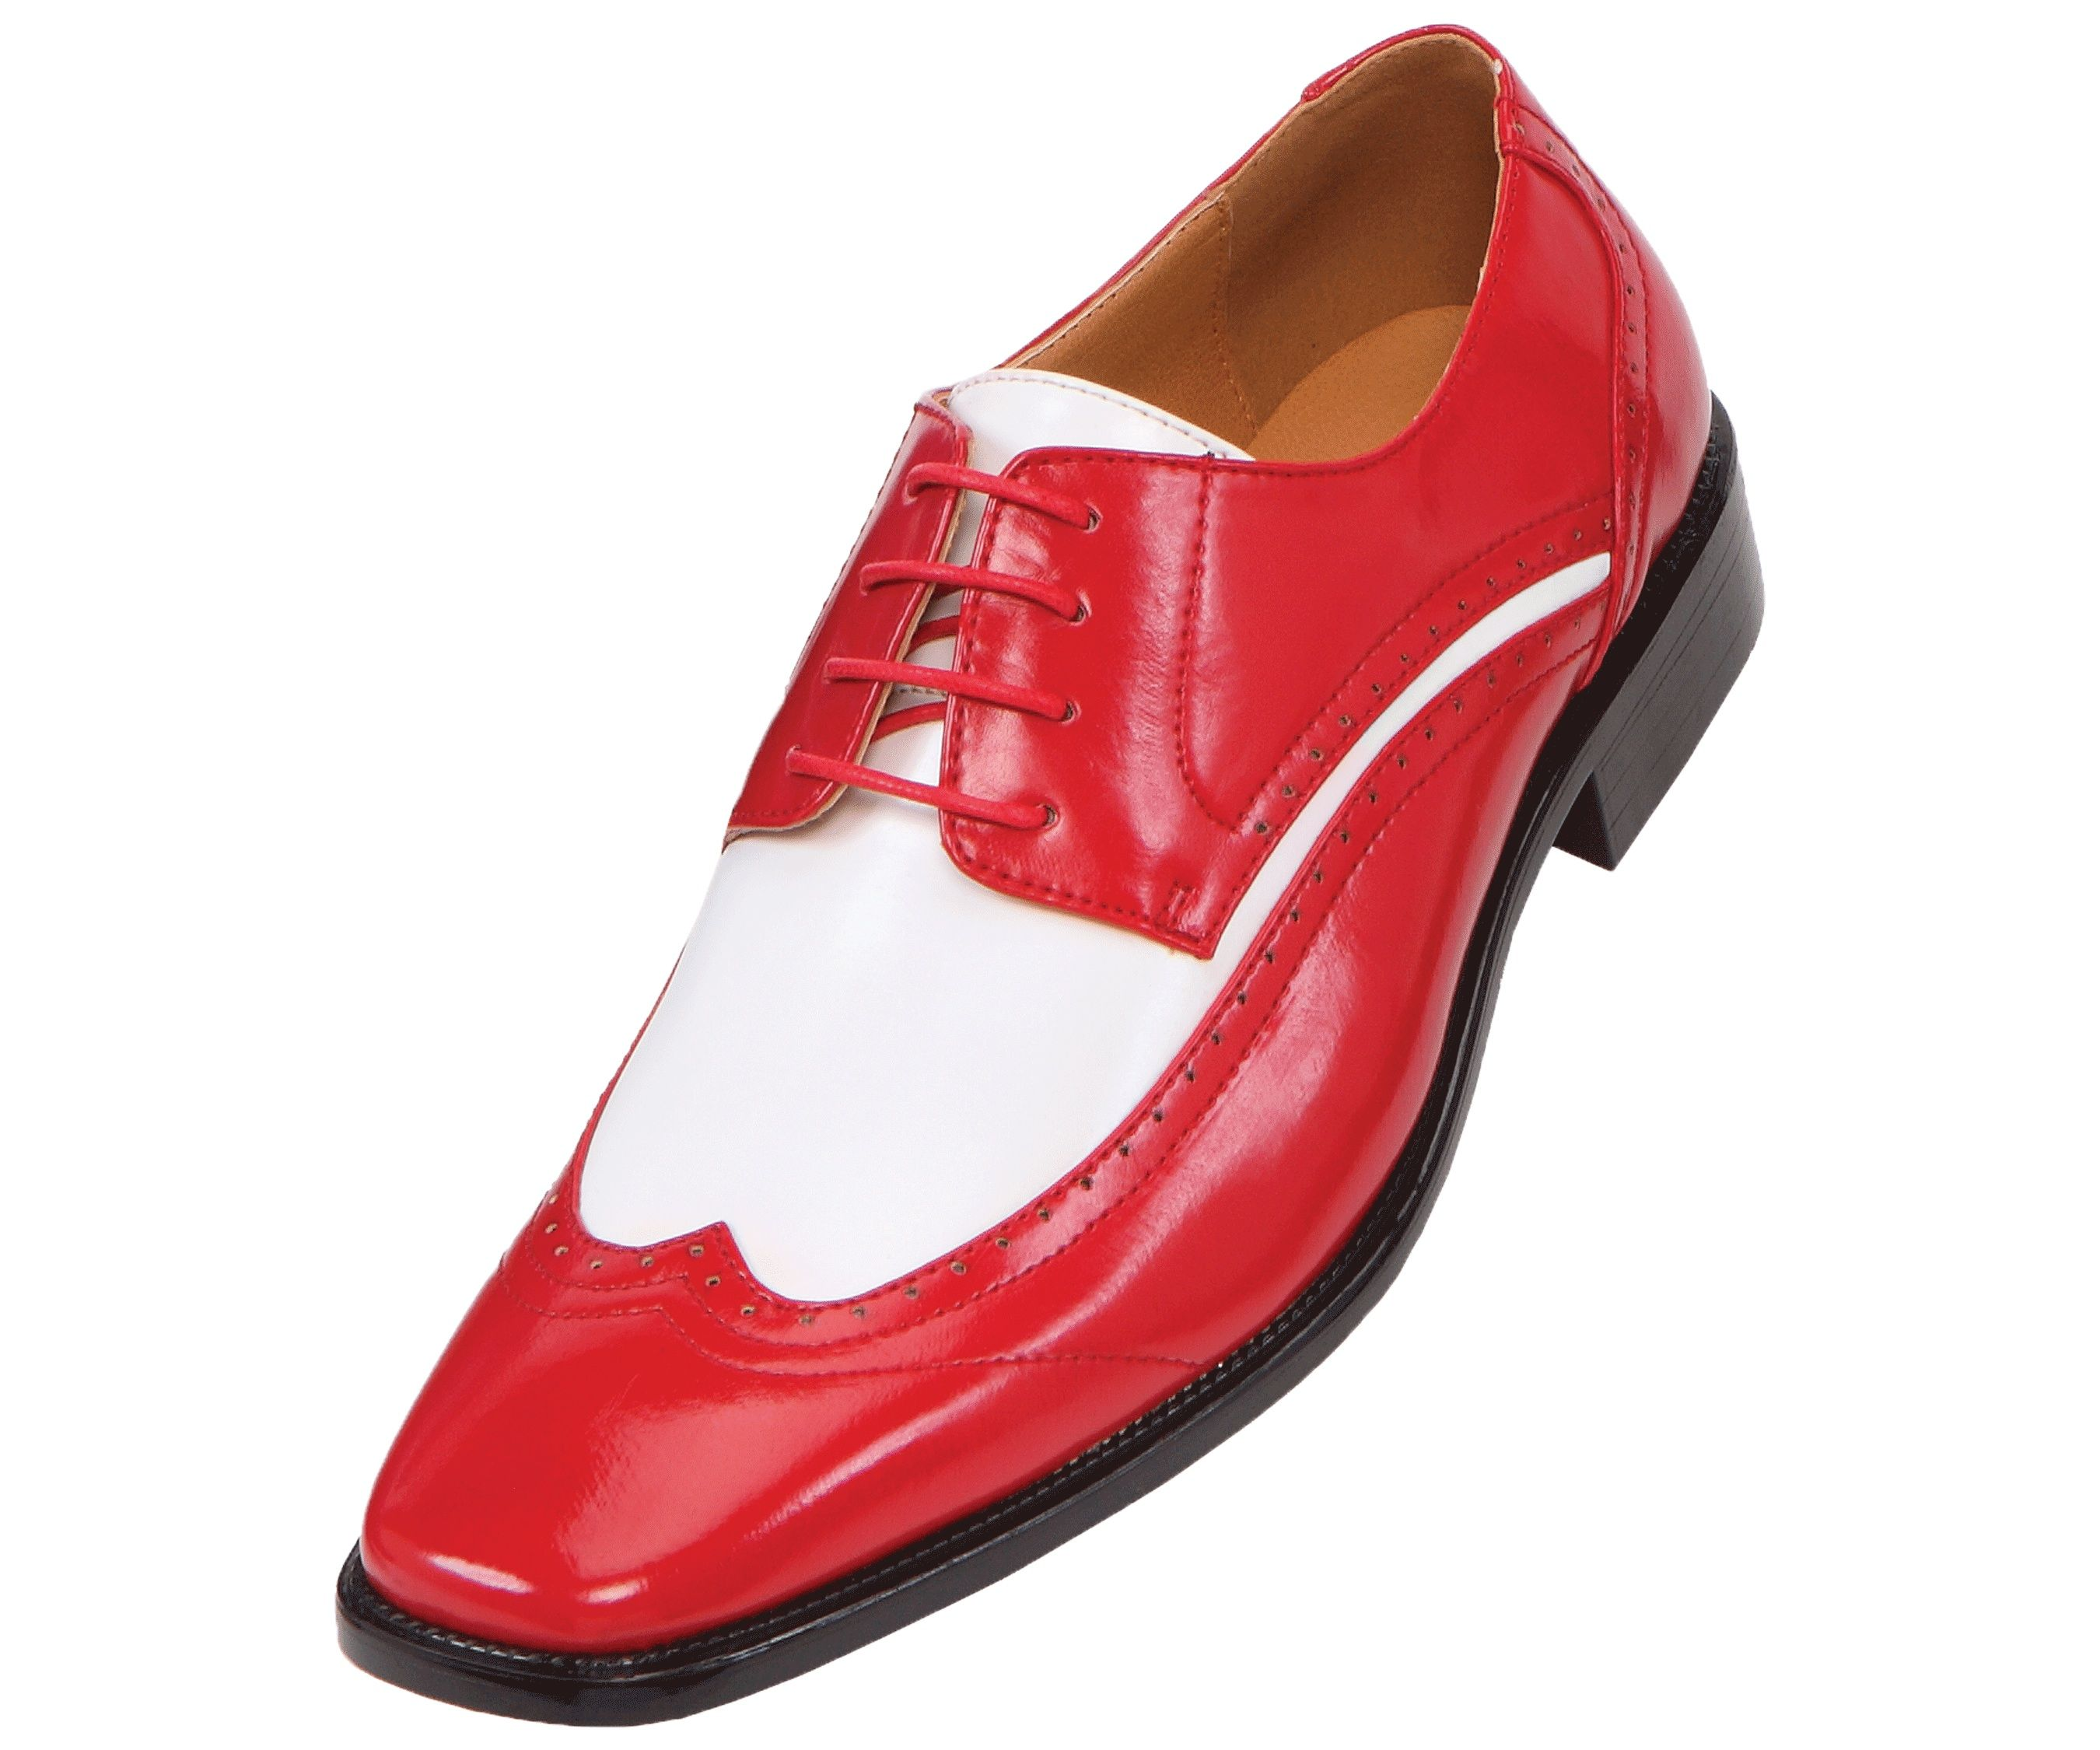 Details about Amali Mens Two-Tone Red and White Oxford Dress Shoe ...